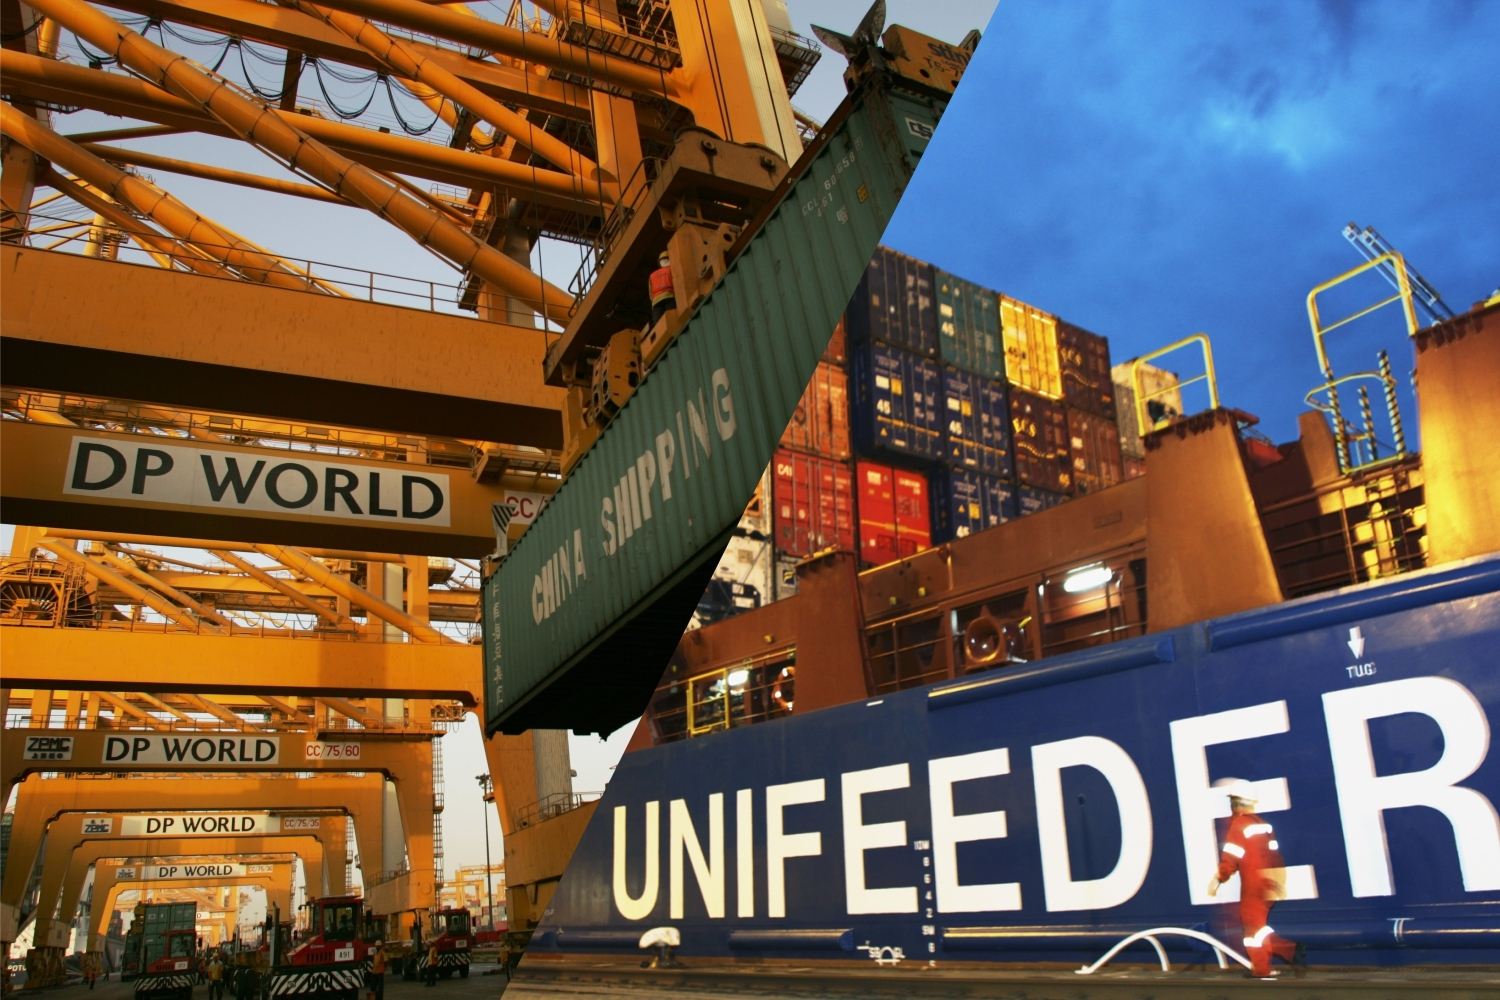 DP World to take over Unifeeder